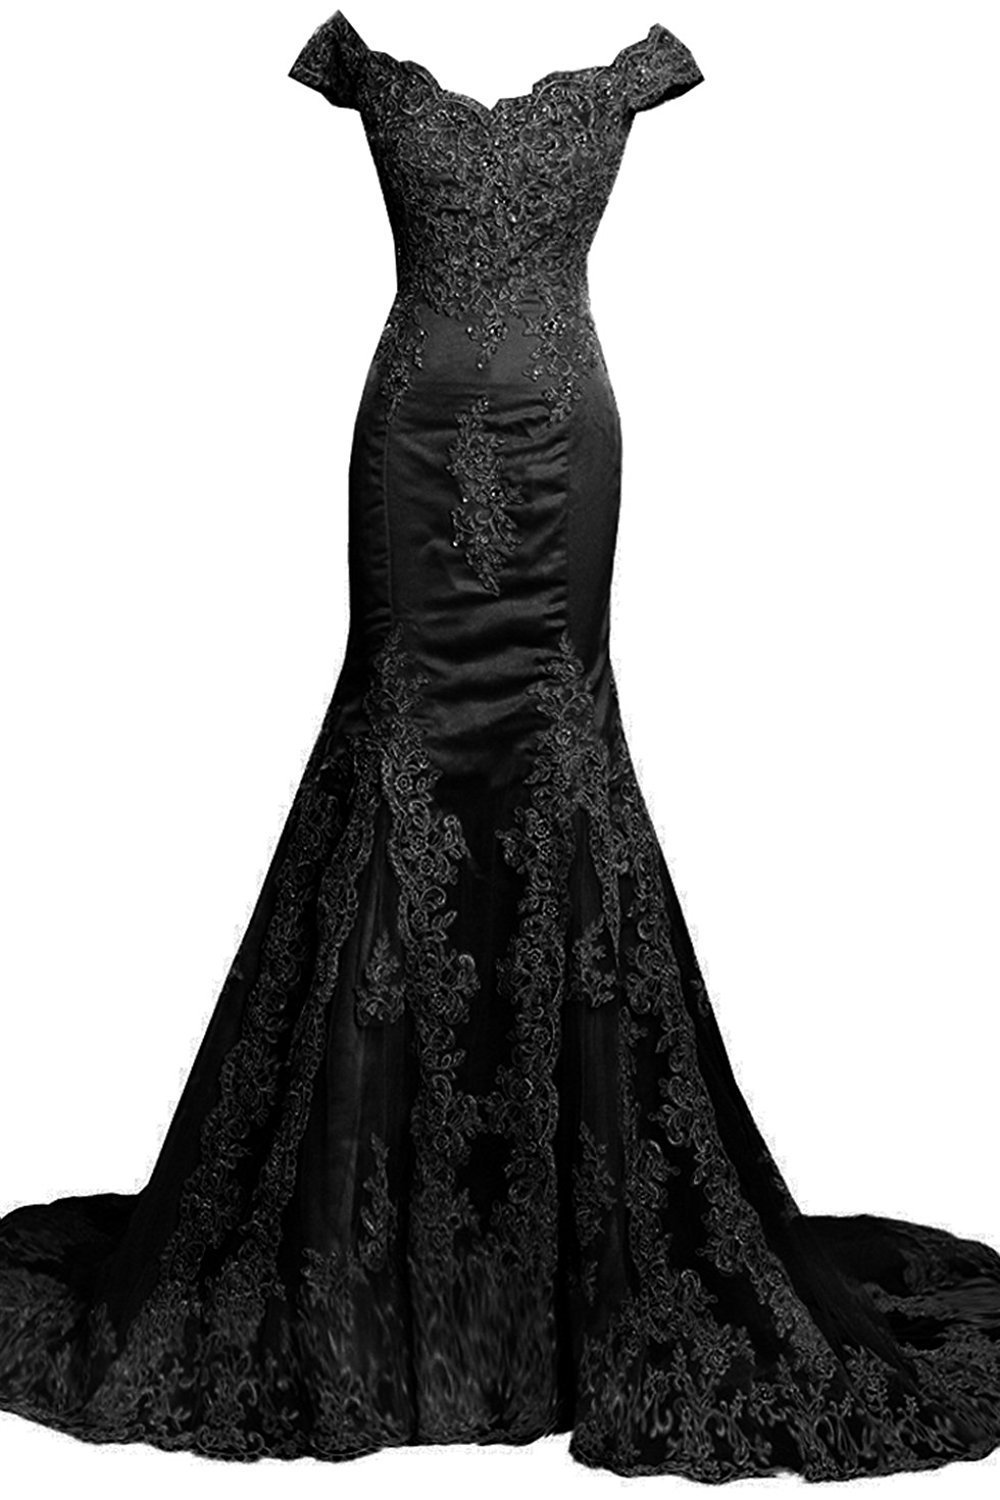 Trumpetmermaid prom dresses offtheshoulder appliques tulle sexy